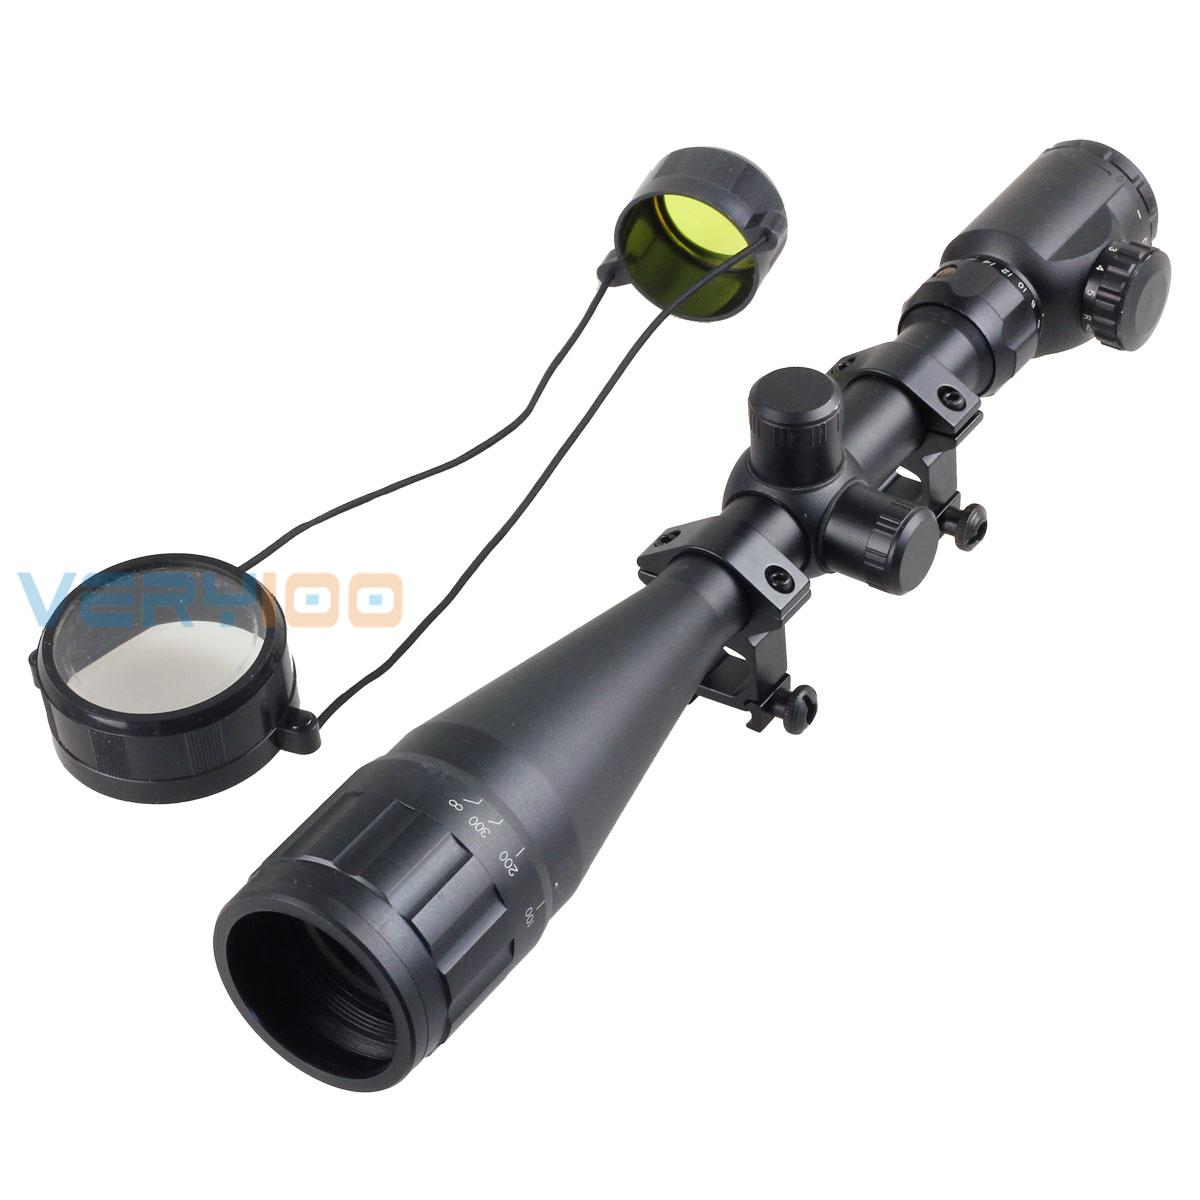 6-24x50 Aoe Red Green Mil-dot Illuminated Optics Air Rifle Hunting Laser Scope Sight Riflescope Free Shipping hunting green dot illuminated laser tactical optics sight rifle airsoft air guns scopes sight green dot rifle scope laser